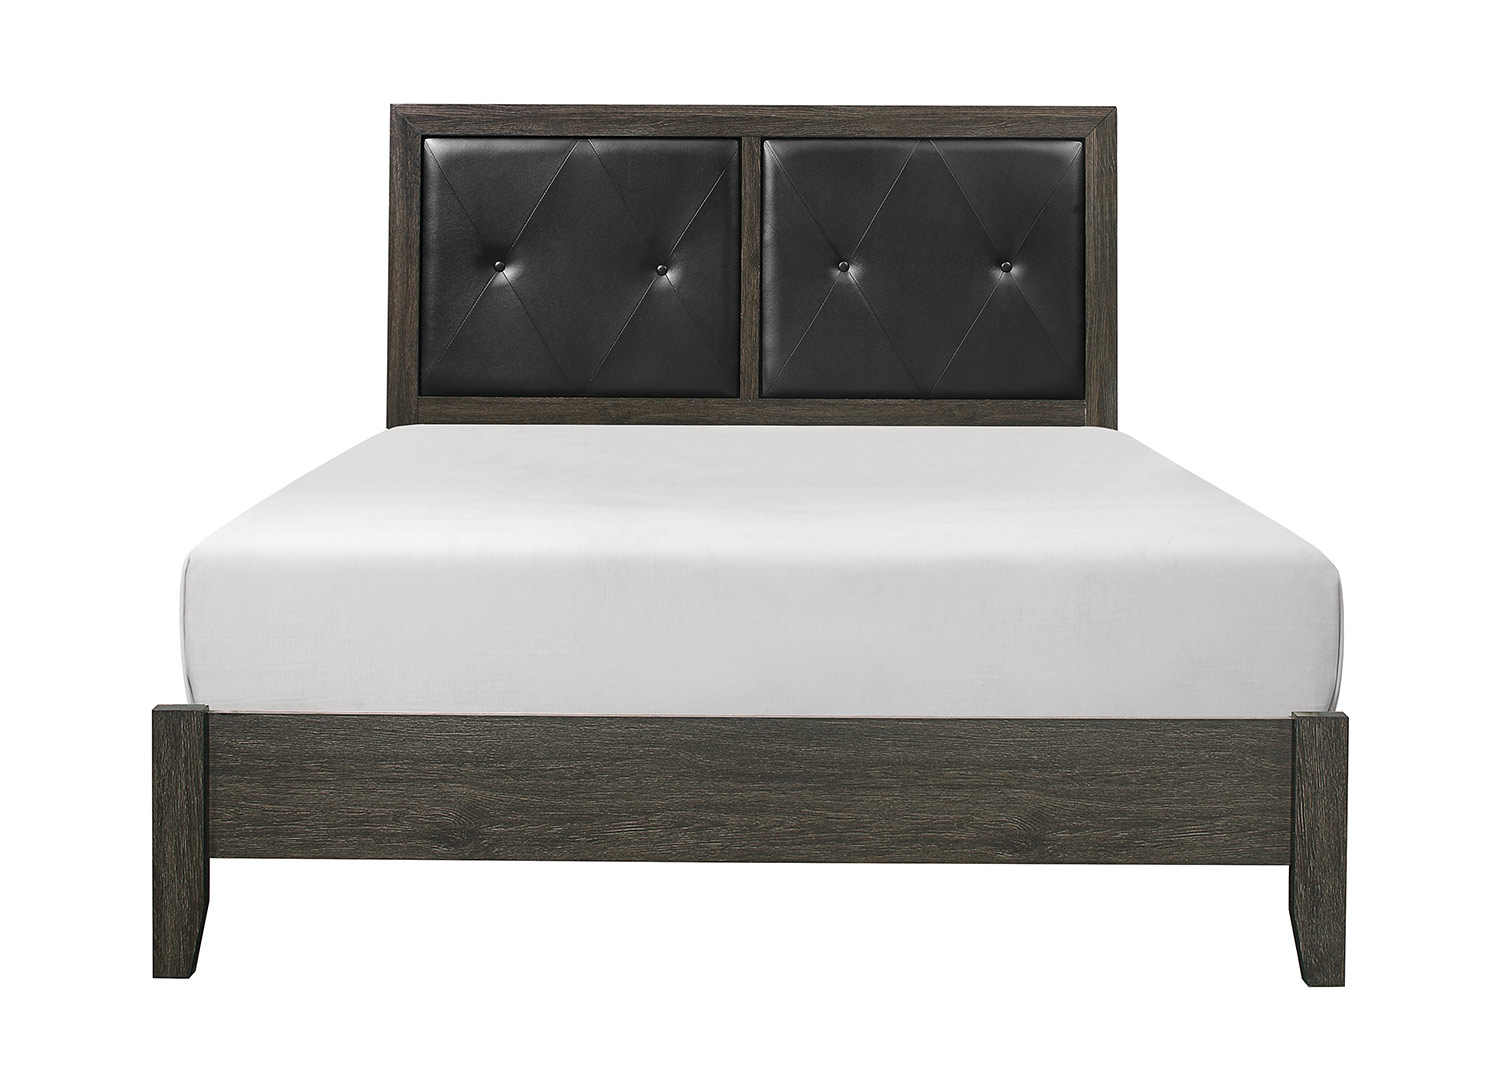 Homelegance Edina Bed - Brown-Gray